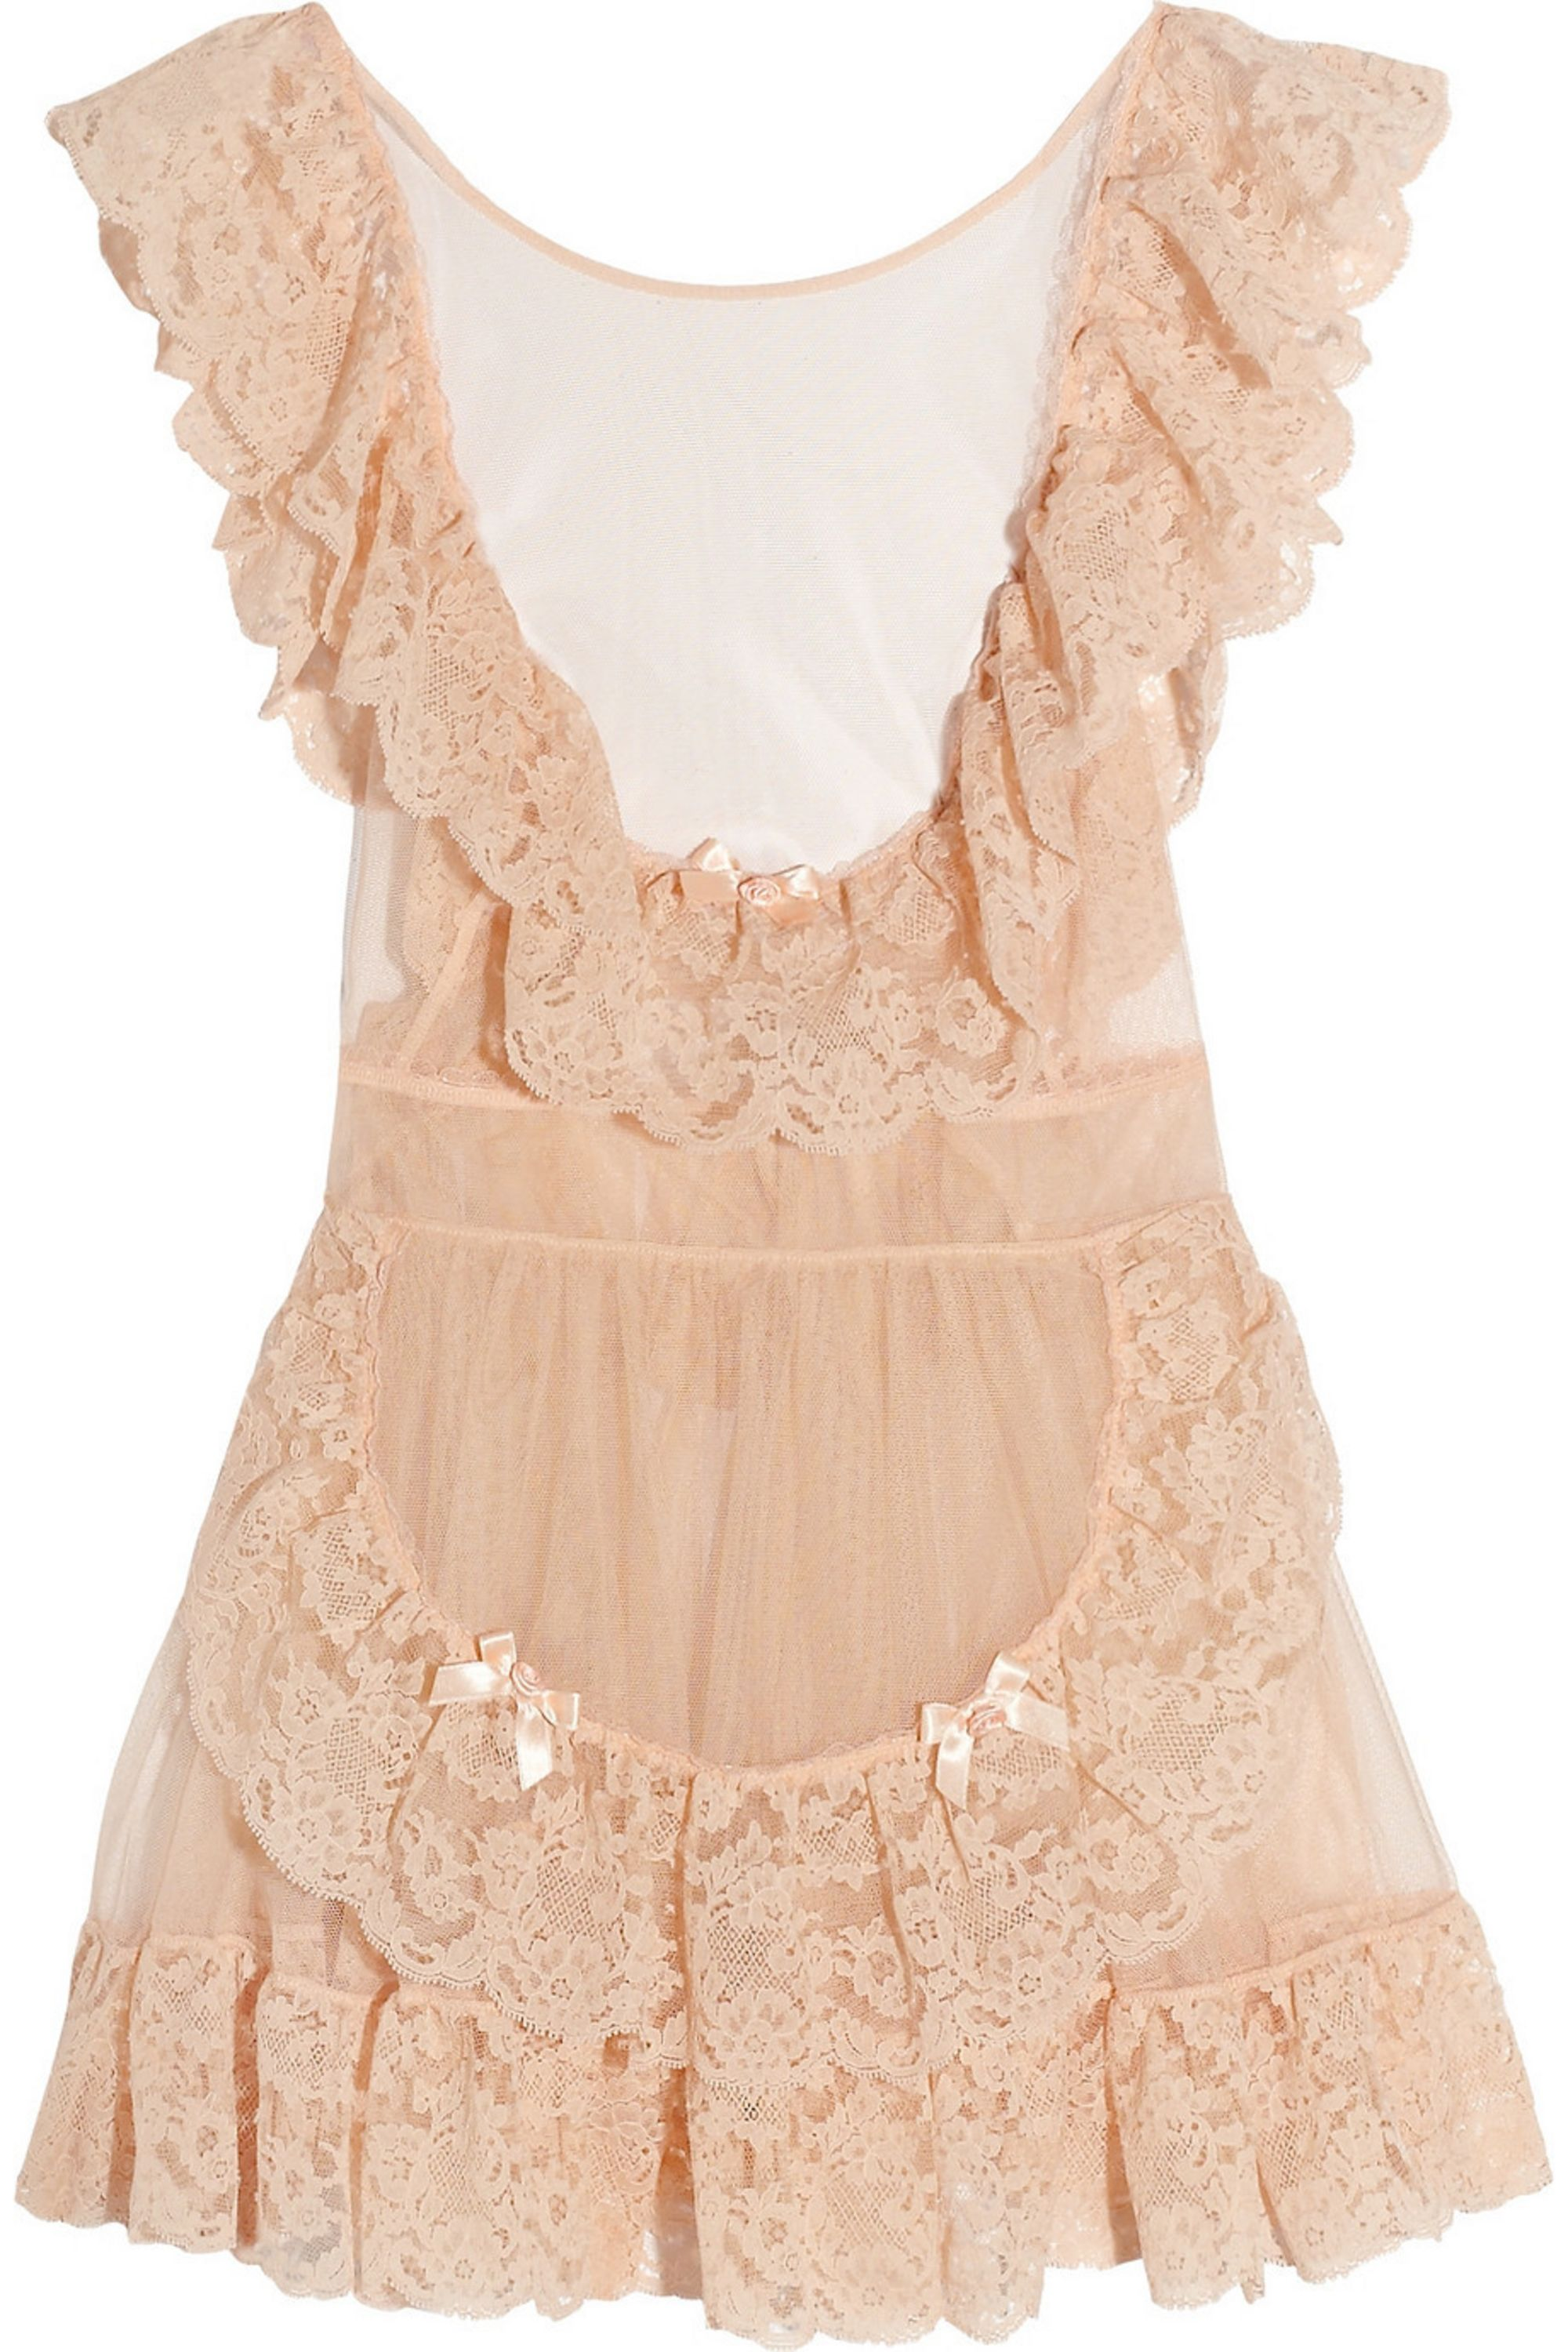 Agent Provocateur Lucienne tulle and lace pinafore babydoll